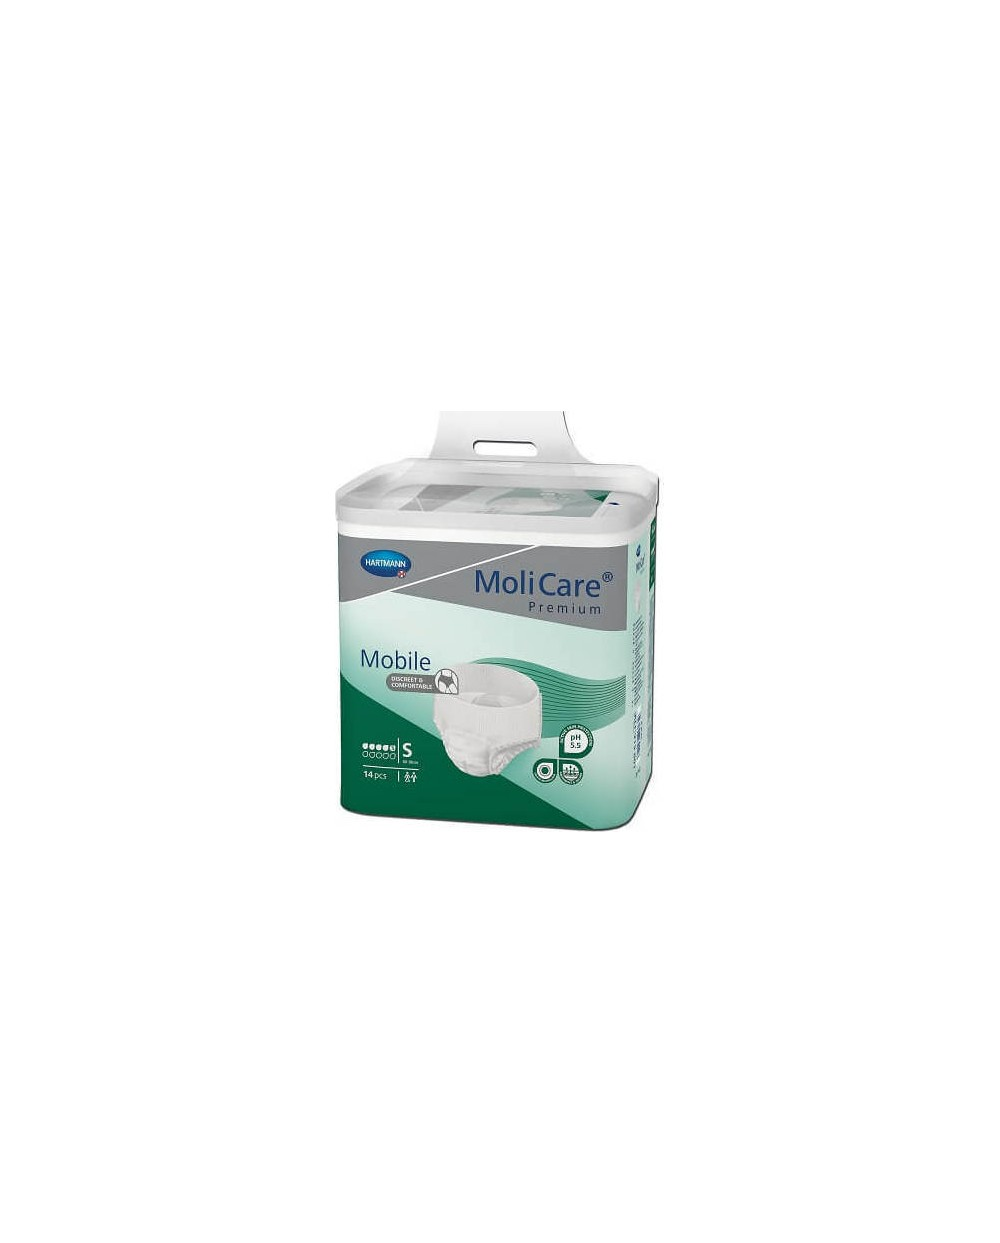 Hartmann MoliCare Mobile 5 gouttes Small- 14 protections